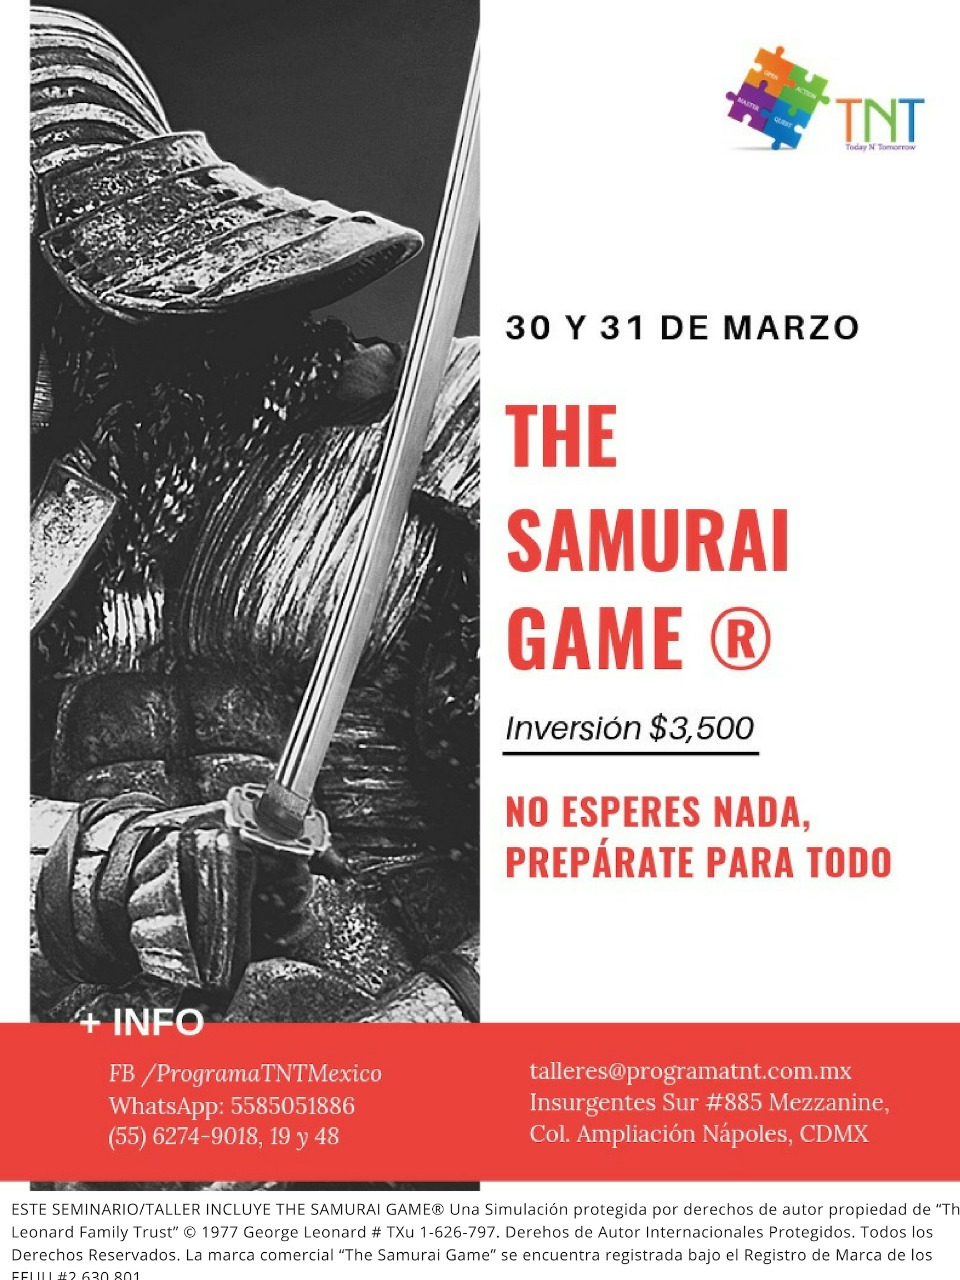 SAMURAI GAME @ PROGRAMA TNT